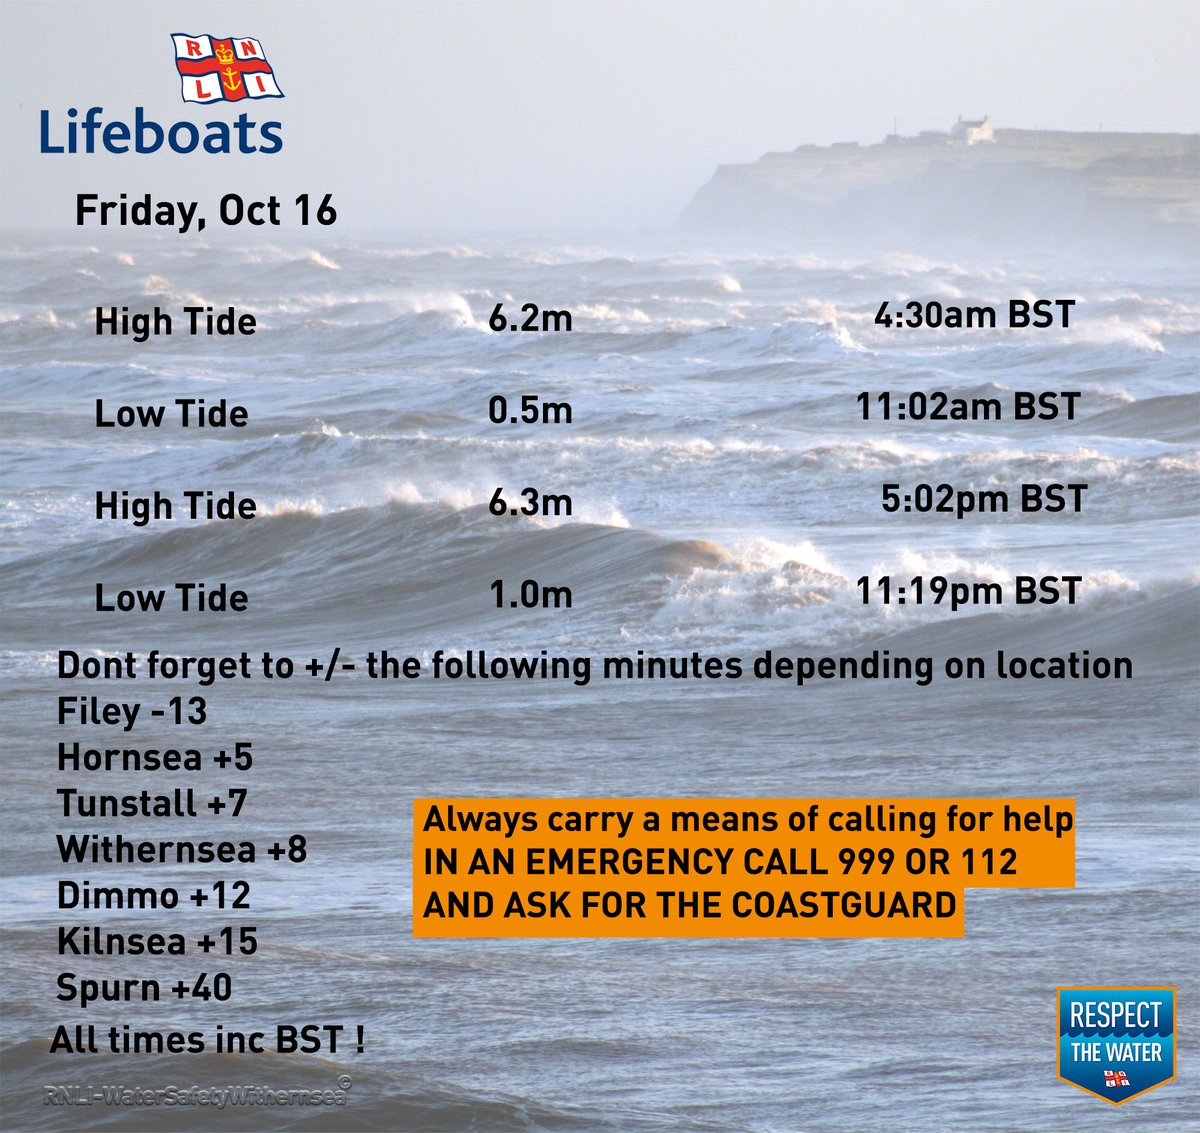 Friday Oct 16 2020🌊⏲️ #RespectTheWater #BeWaterAware #BeBeachSafe #TideTimes #WaterSafety #Withernsea https://t.co/TGfm5amB9U